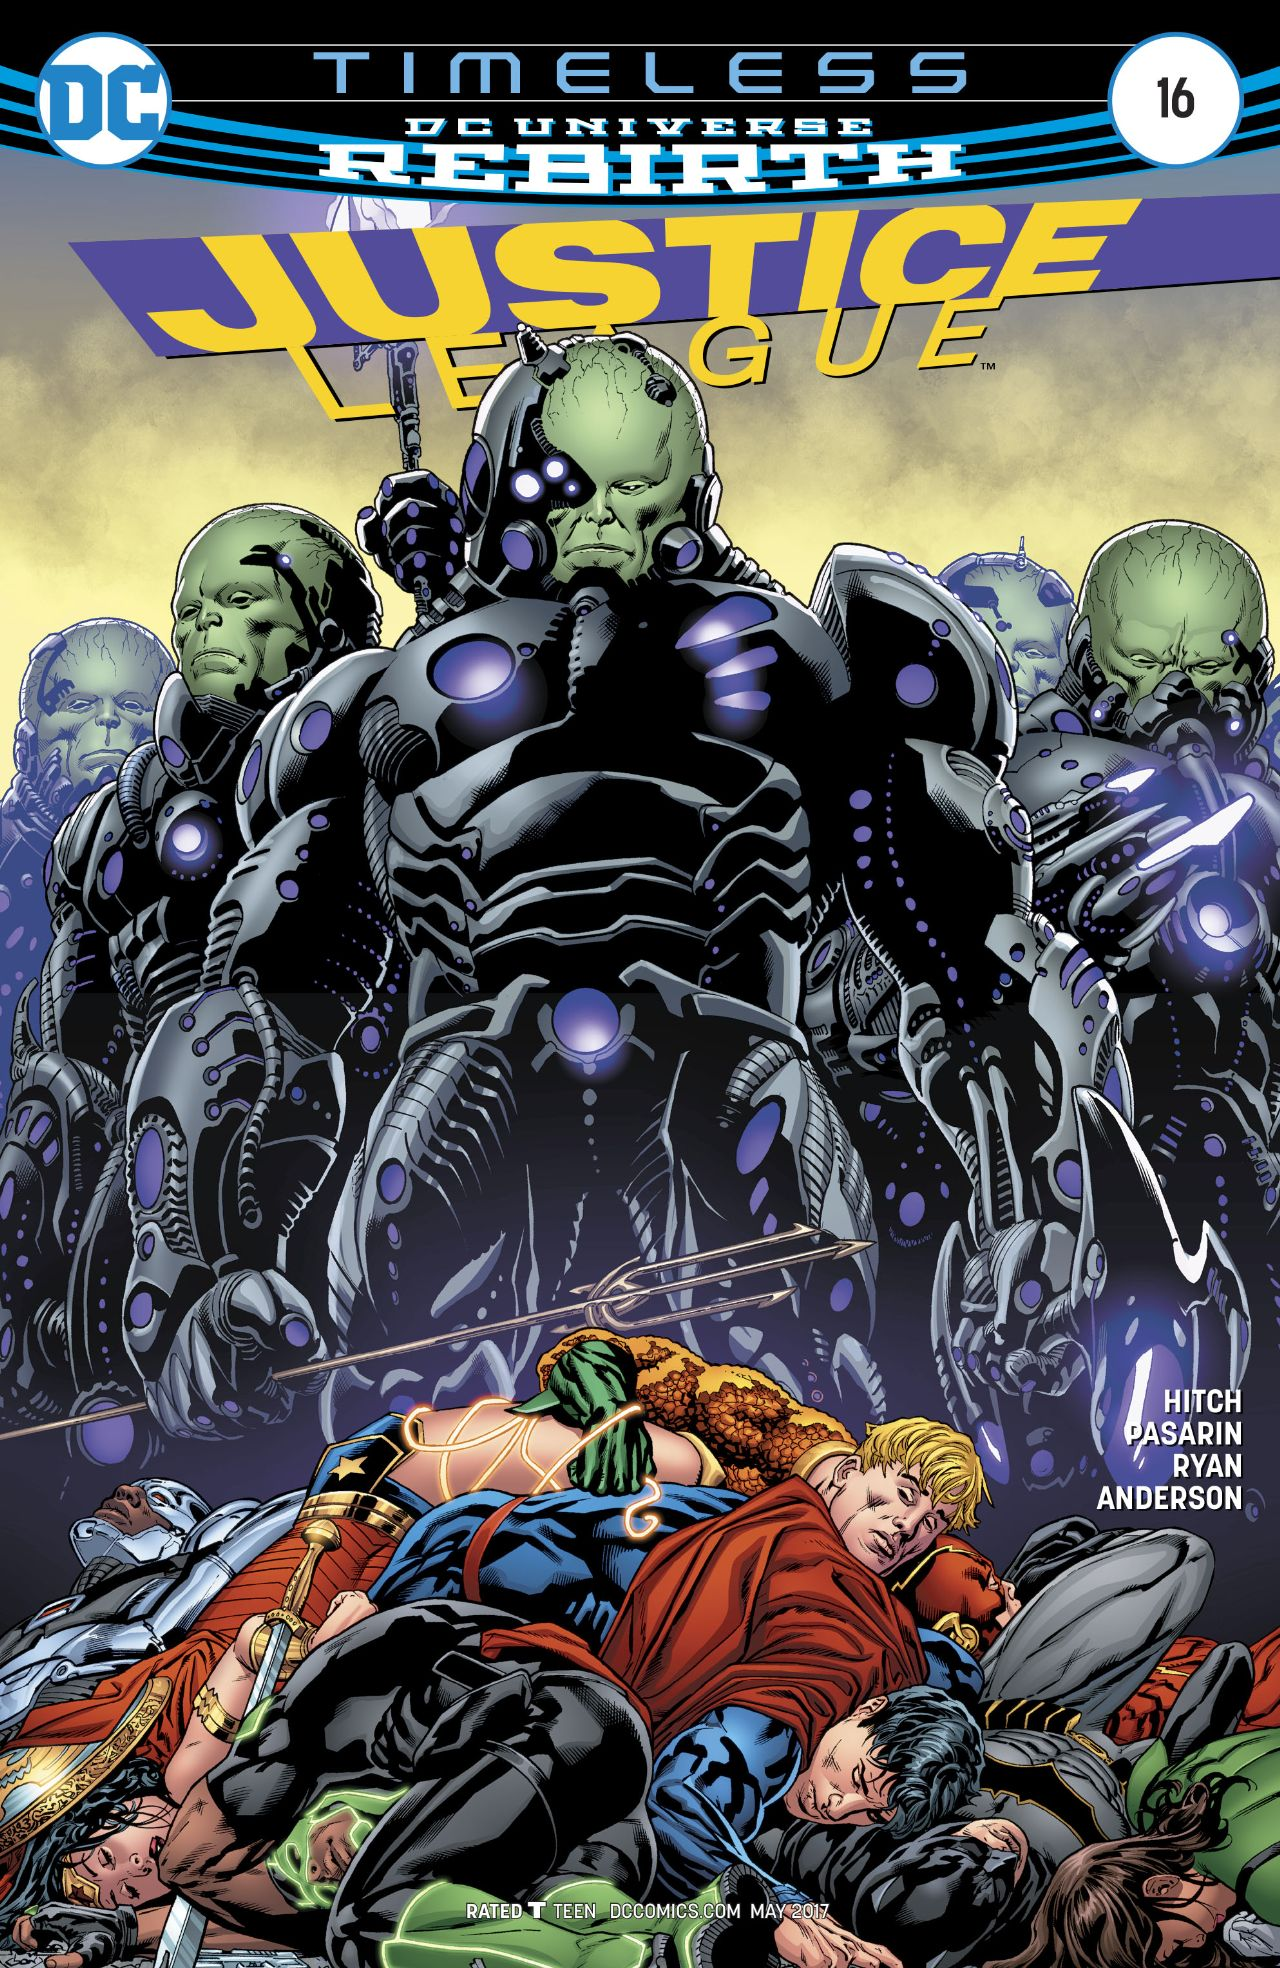 Justice League Vol 3 16   DC Database   FANDOM powered by ...